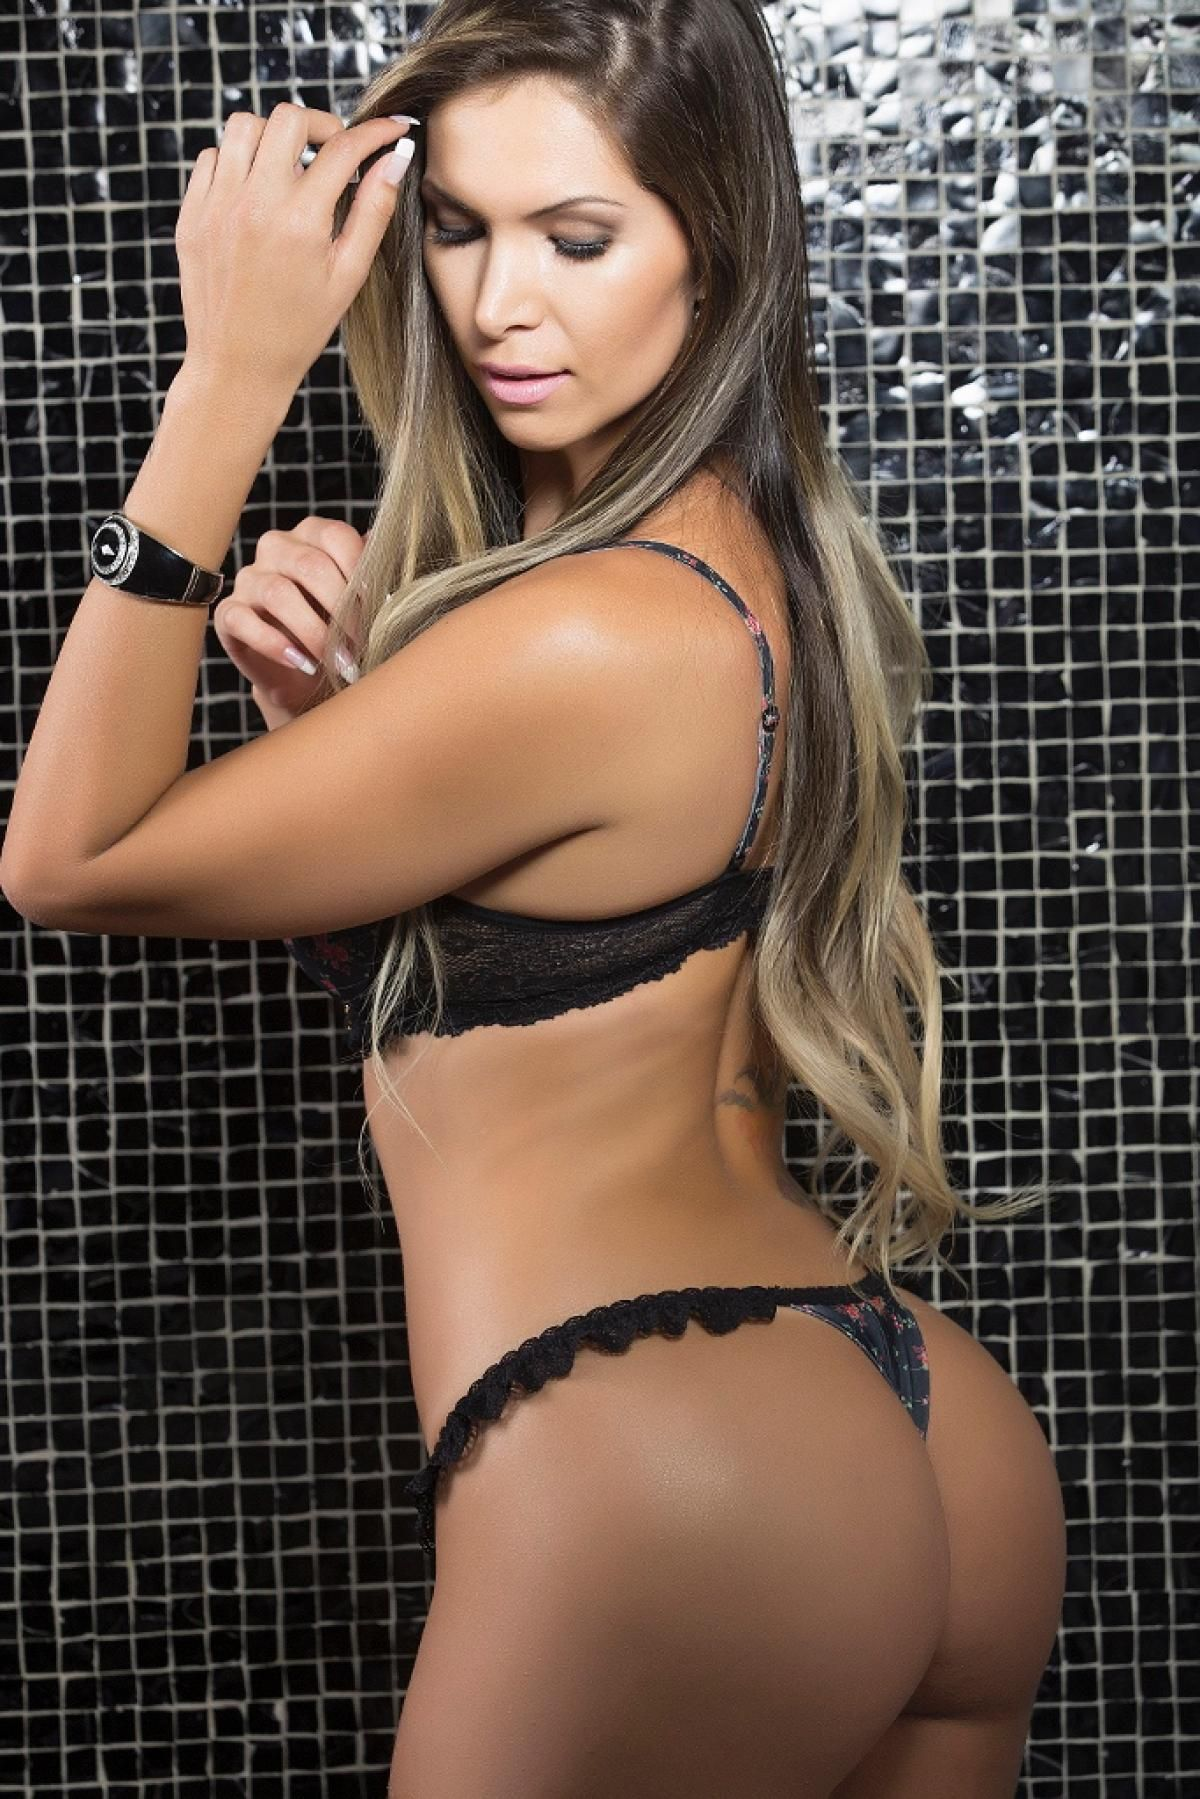 Ass Laura Monroy naked (67 foto and video), Pussy, Cleavage, Twitter, bra 2017